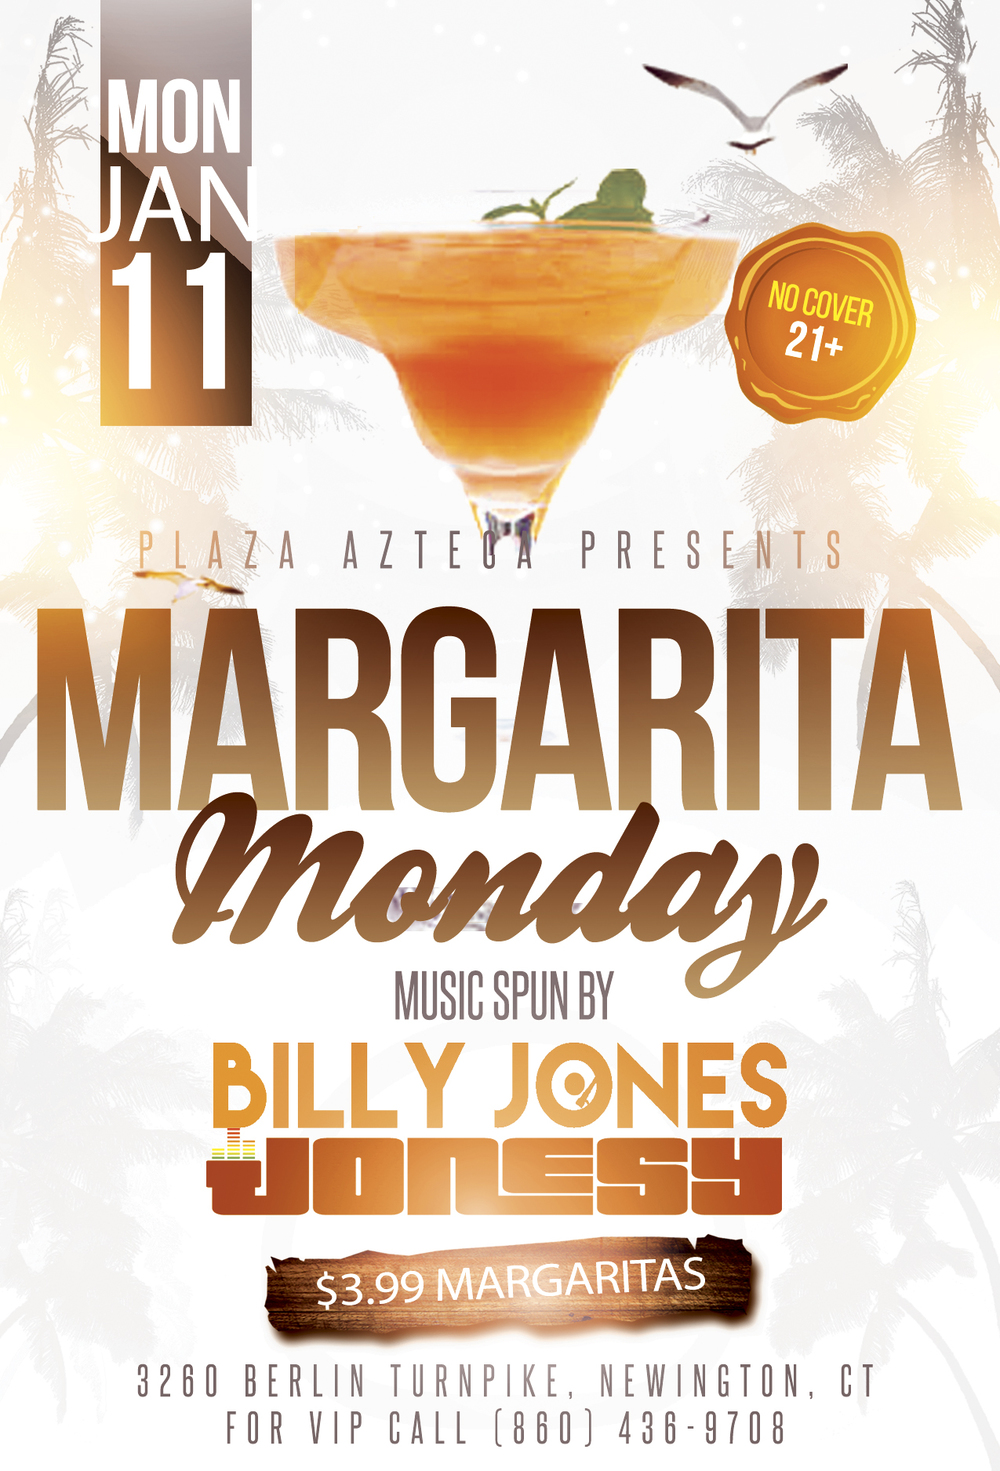 Monday, January 11th join us at Plaza Azteca in Newington, CT for Margarita Monday with music by JONESY &  B  illy Jonesy .  Music starts at 9 pm.  $4 Margaritas all night long!